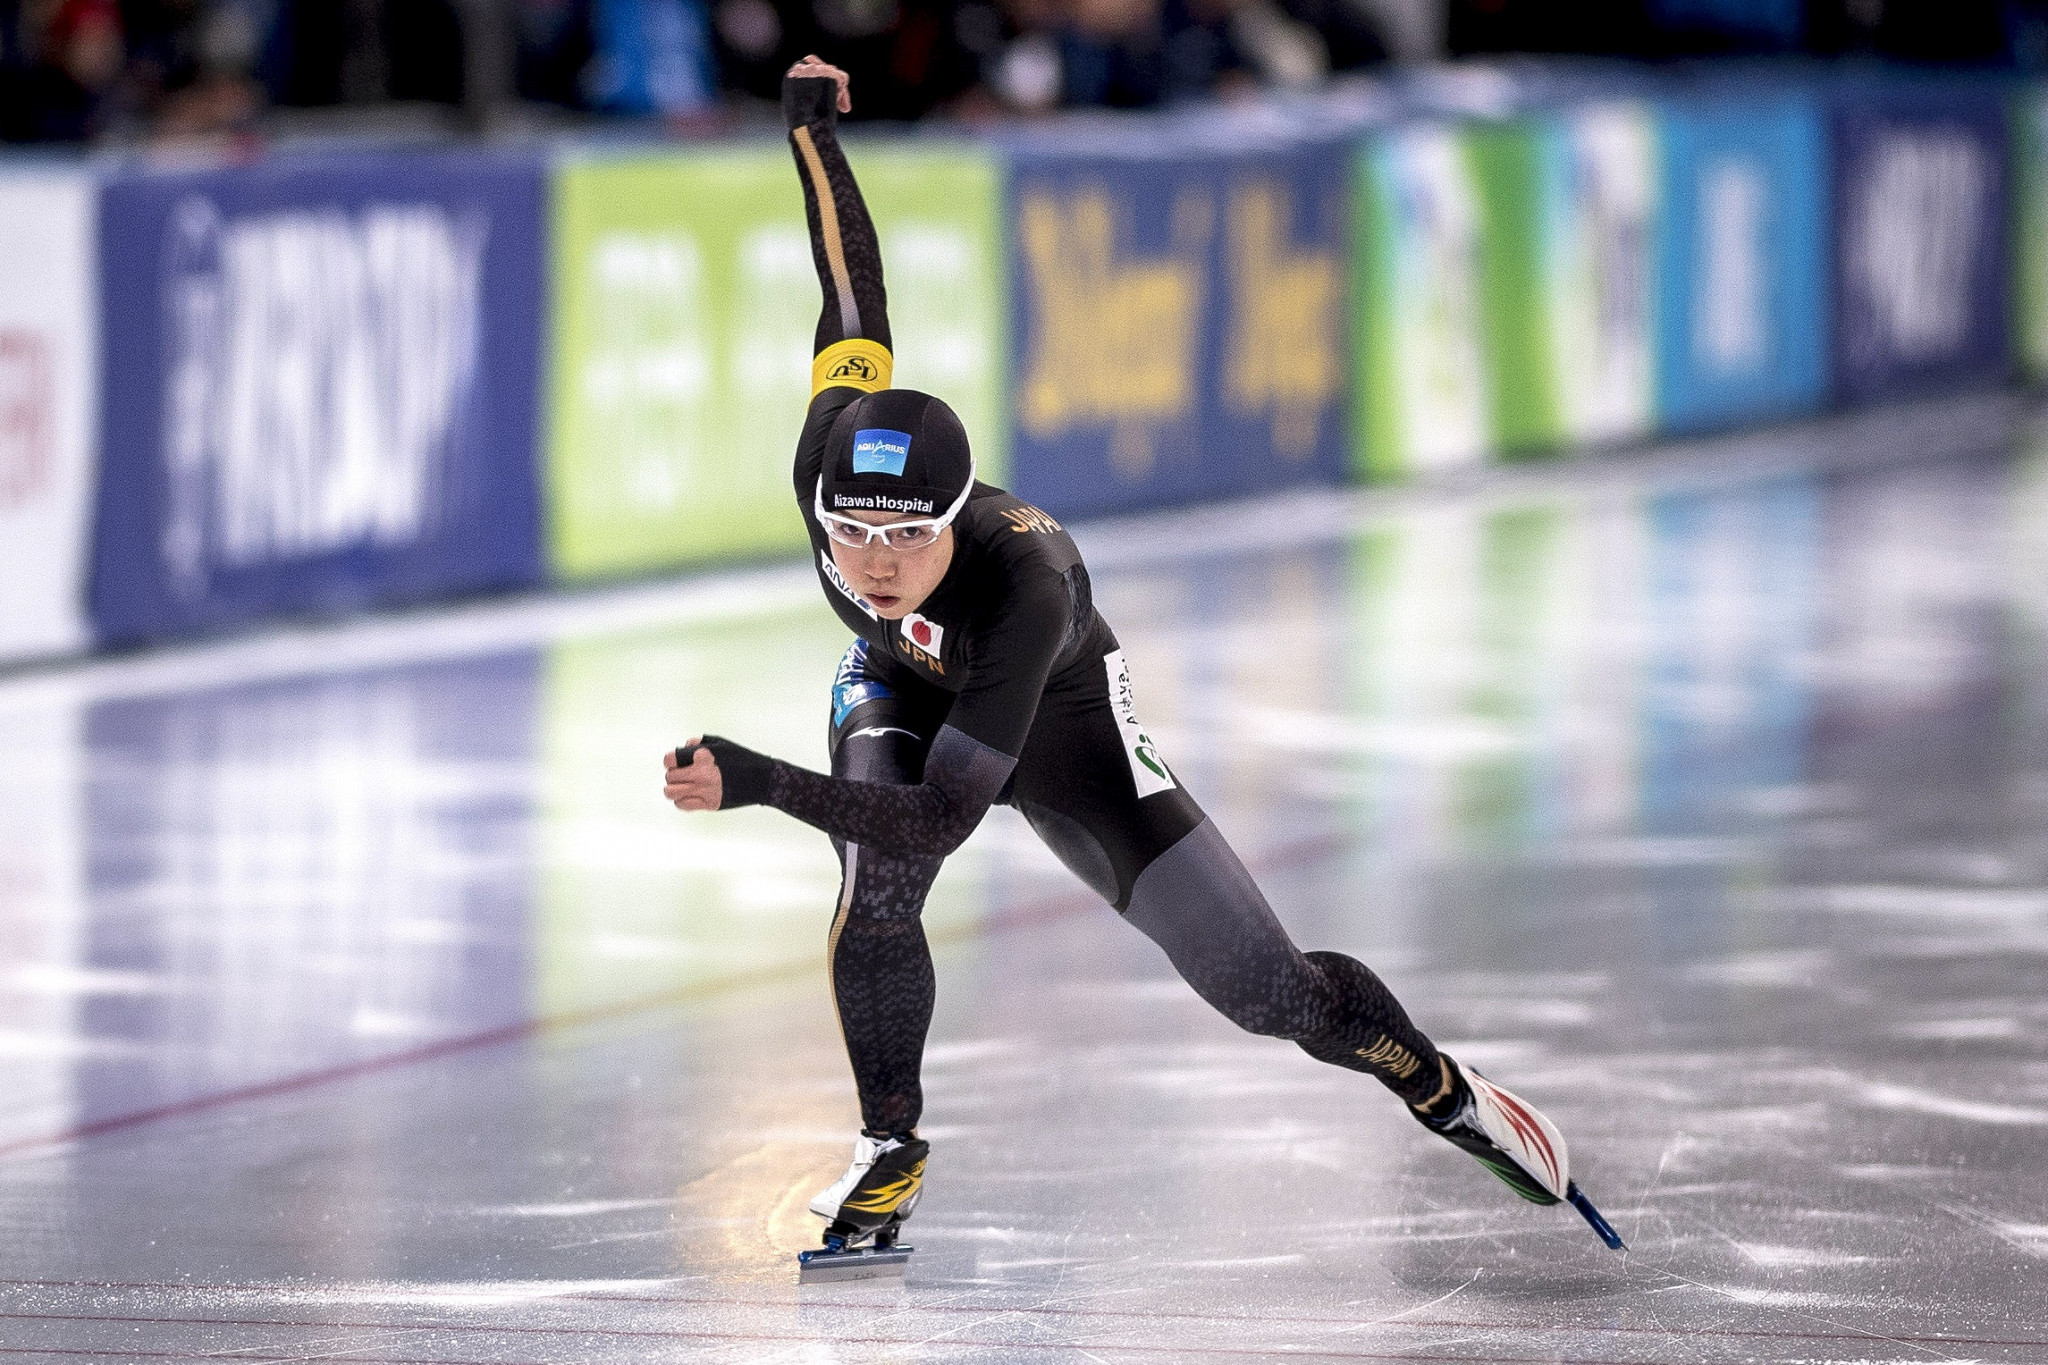 Japan break team pursuit world record as Kodaira adds another speed skating gold in Salt Lake City